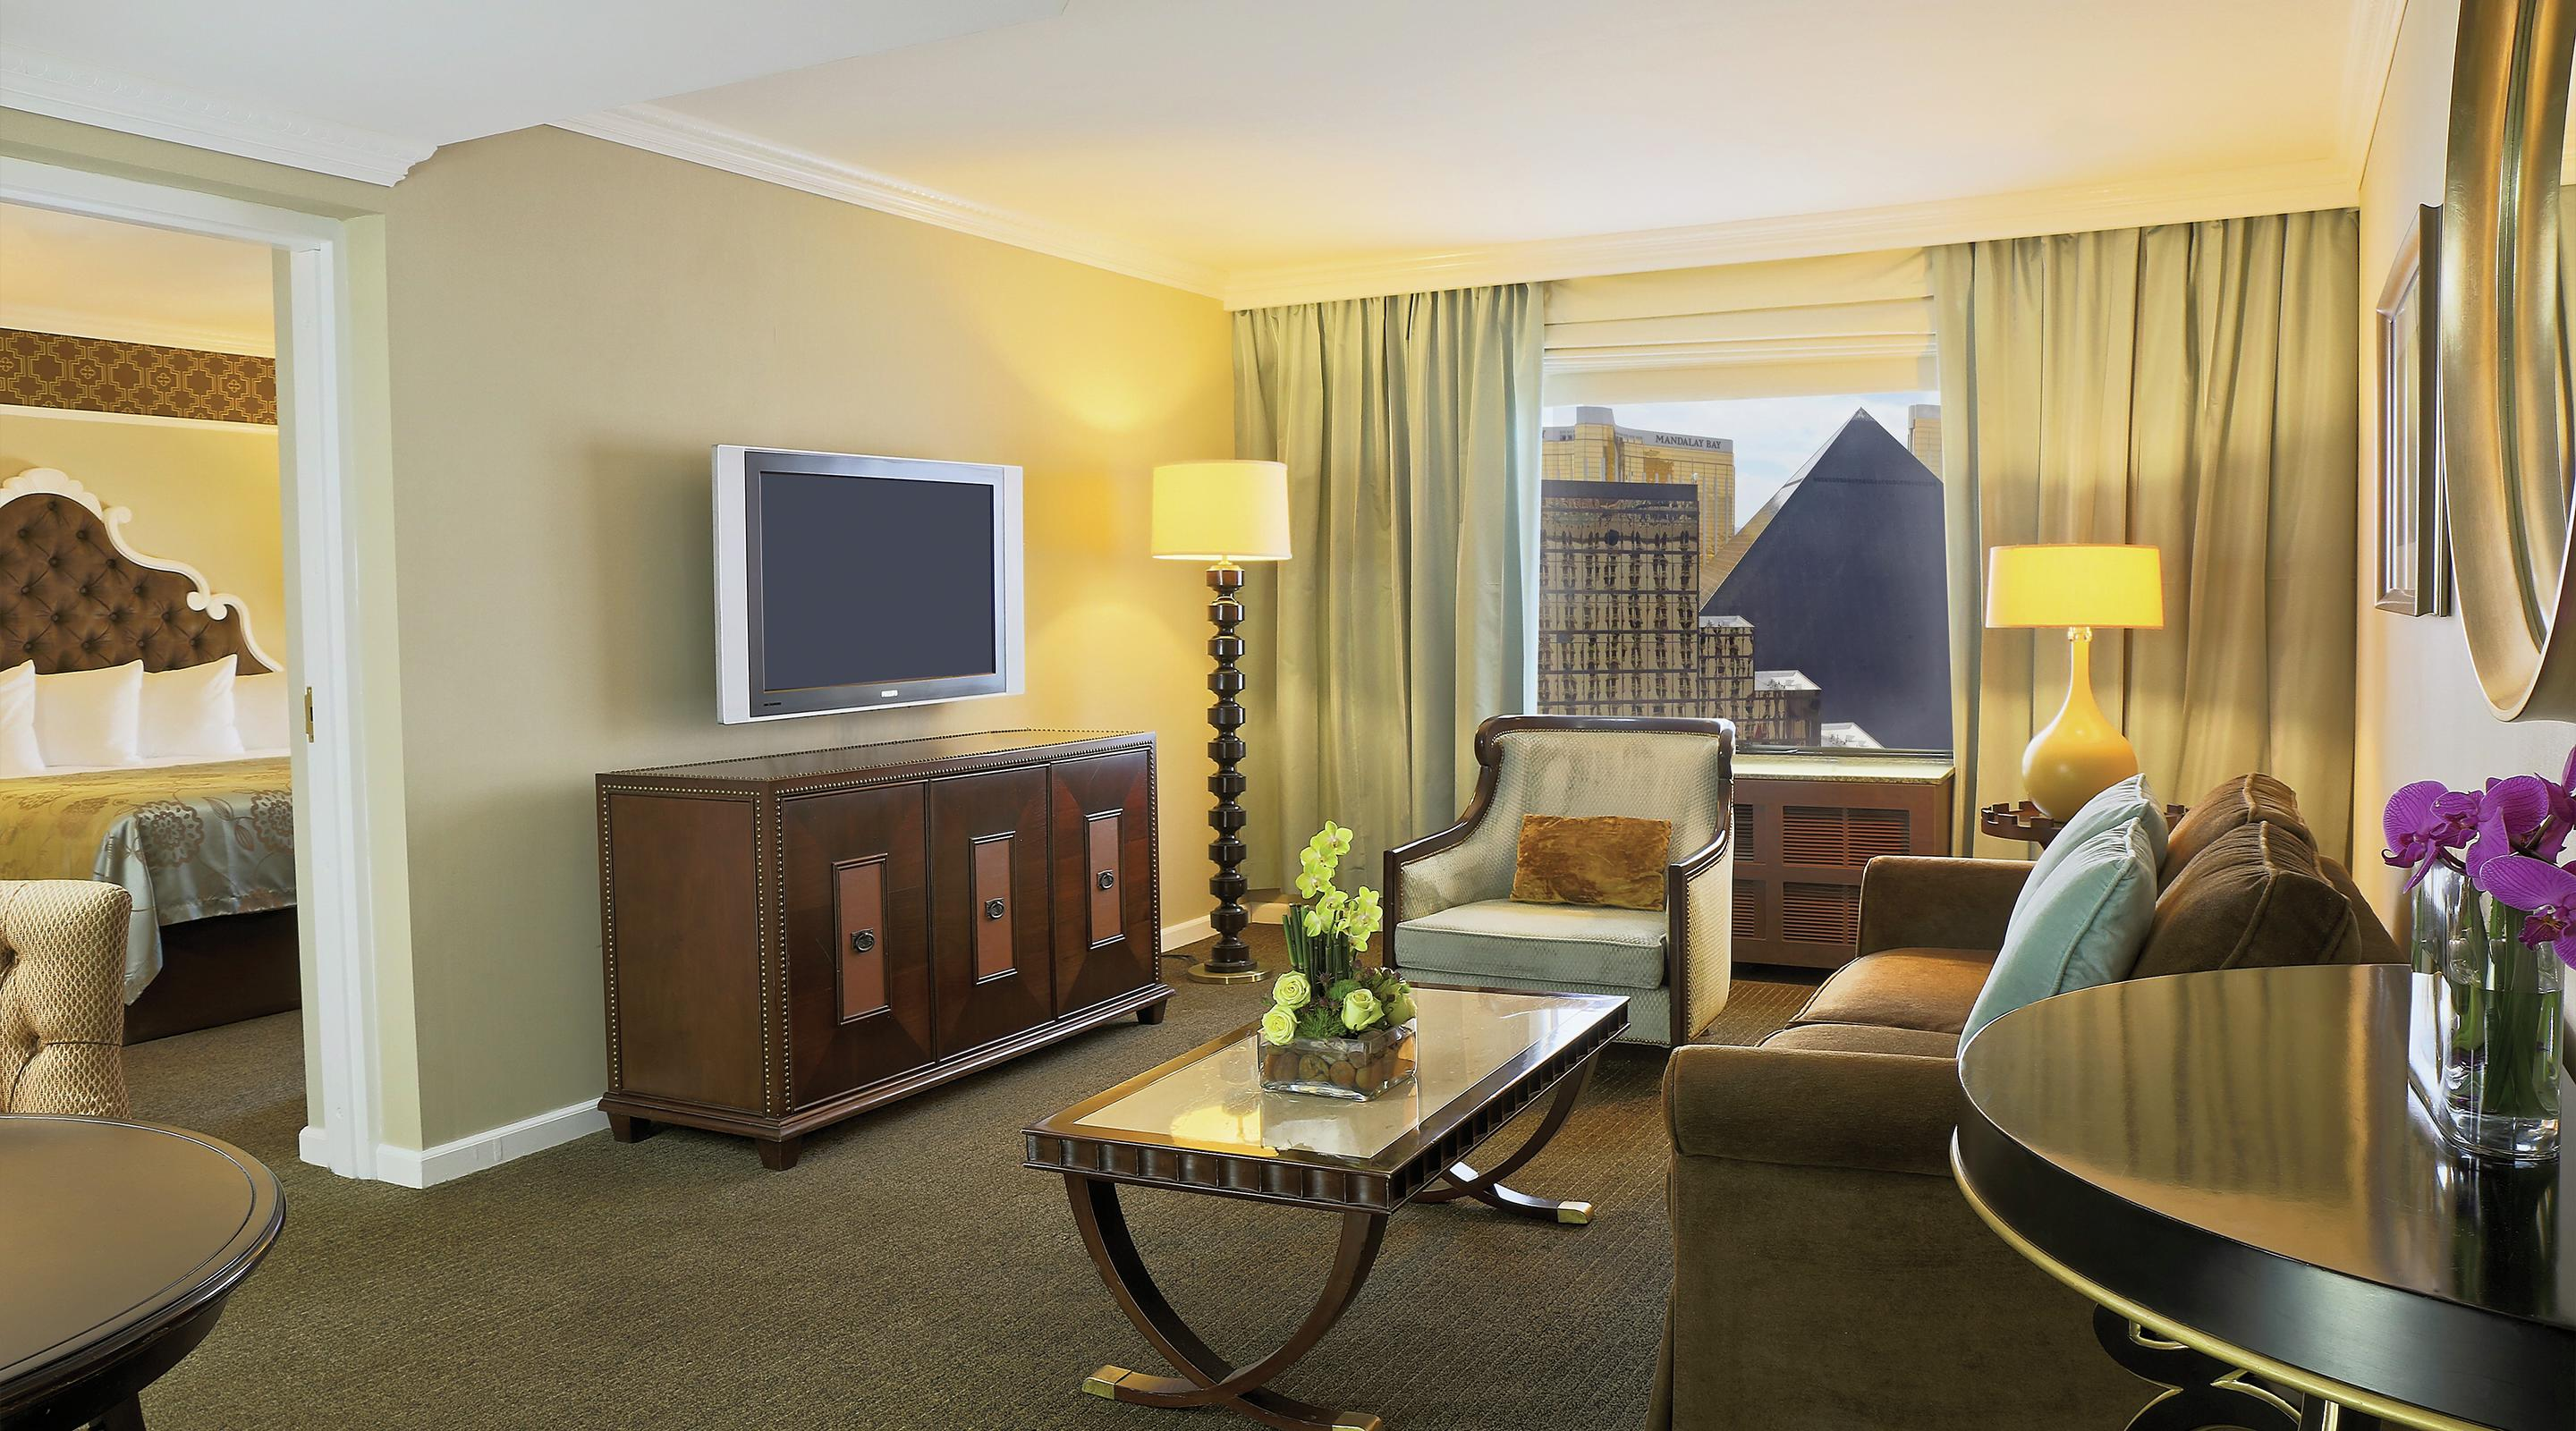 hotels with 2 bedroom suites excalibur hotel 2 bedroom suite psoriasisguru 18874